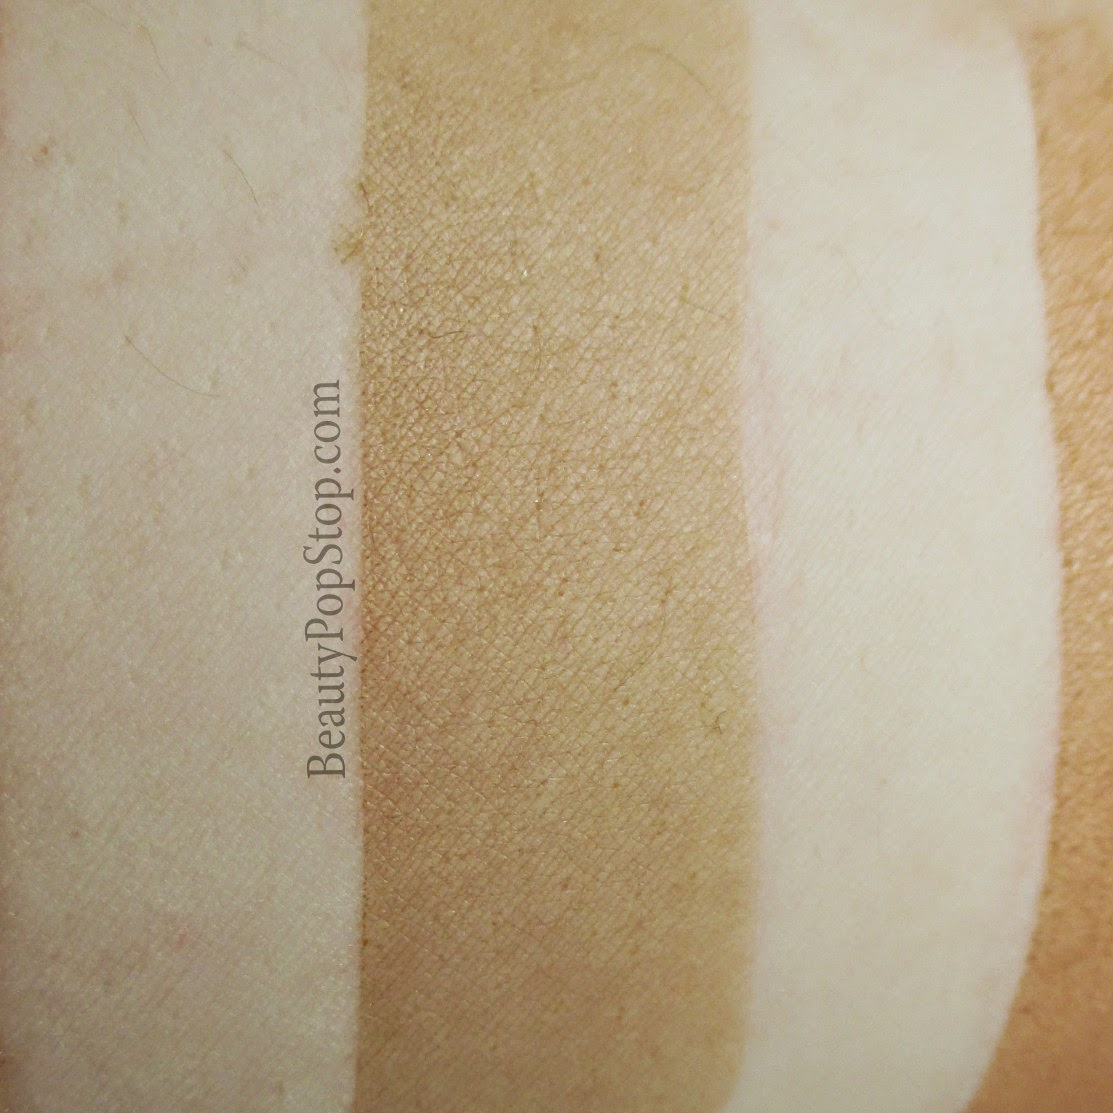 perfekt matte body perfection gel in tan swatch